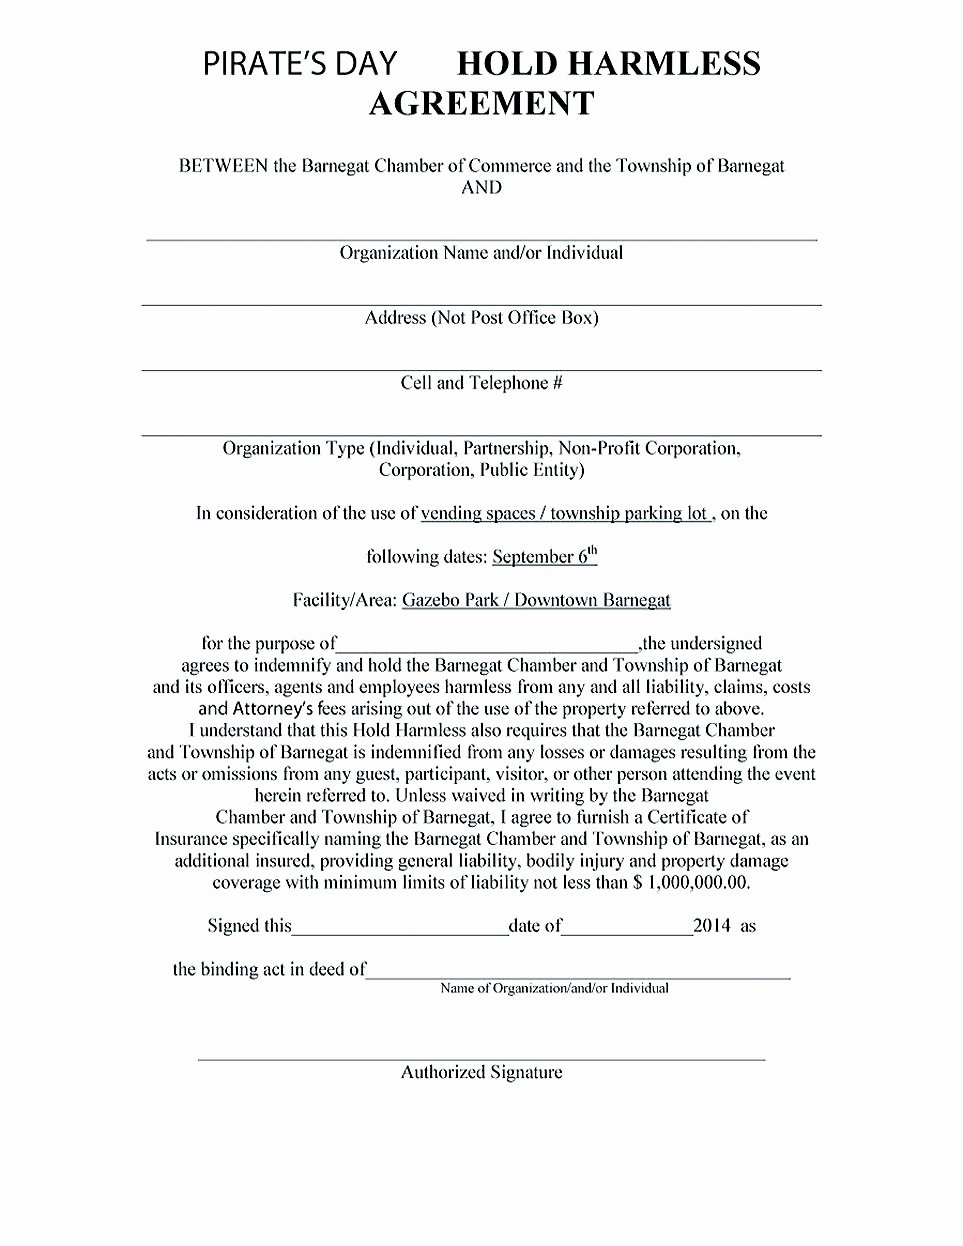 Hold Harmless Agreement Sample Wording New Making Hold Harmless Agreement Template for Different Purposes